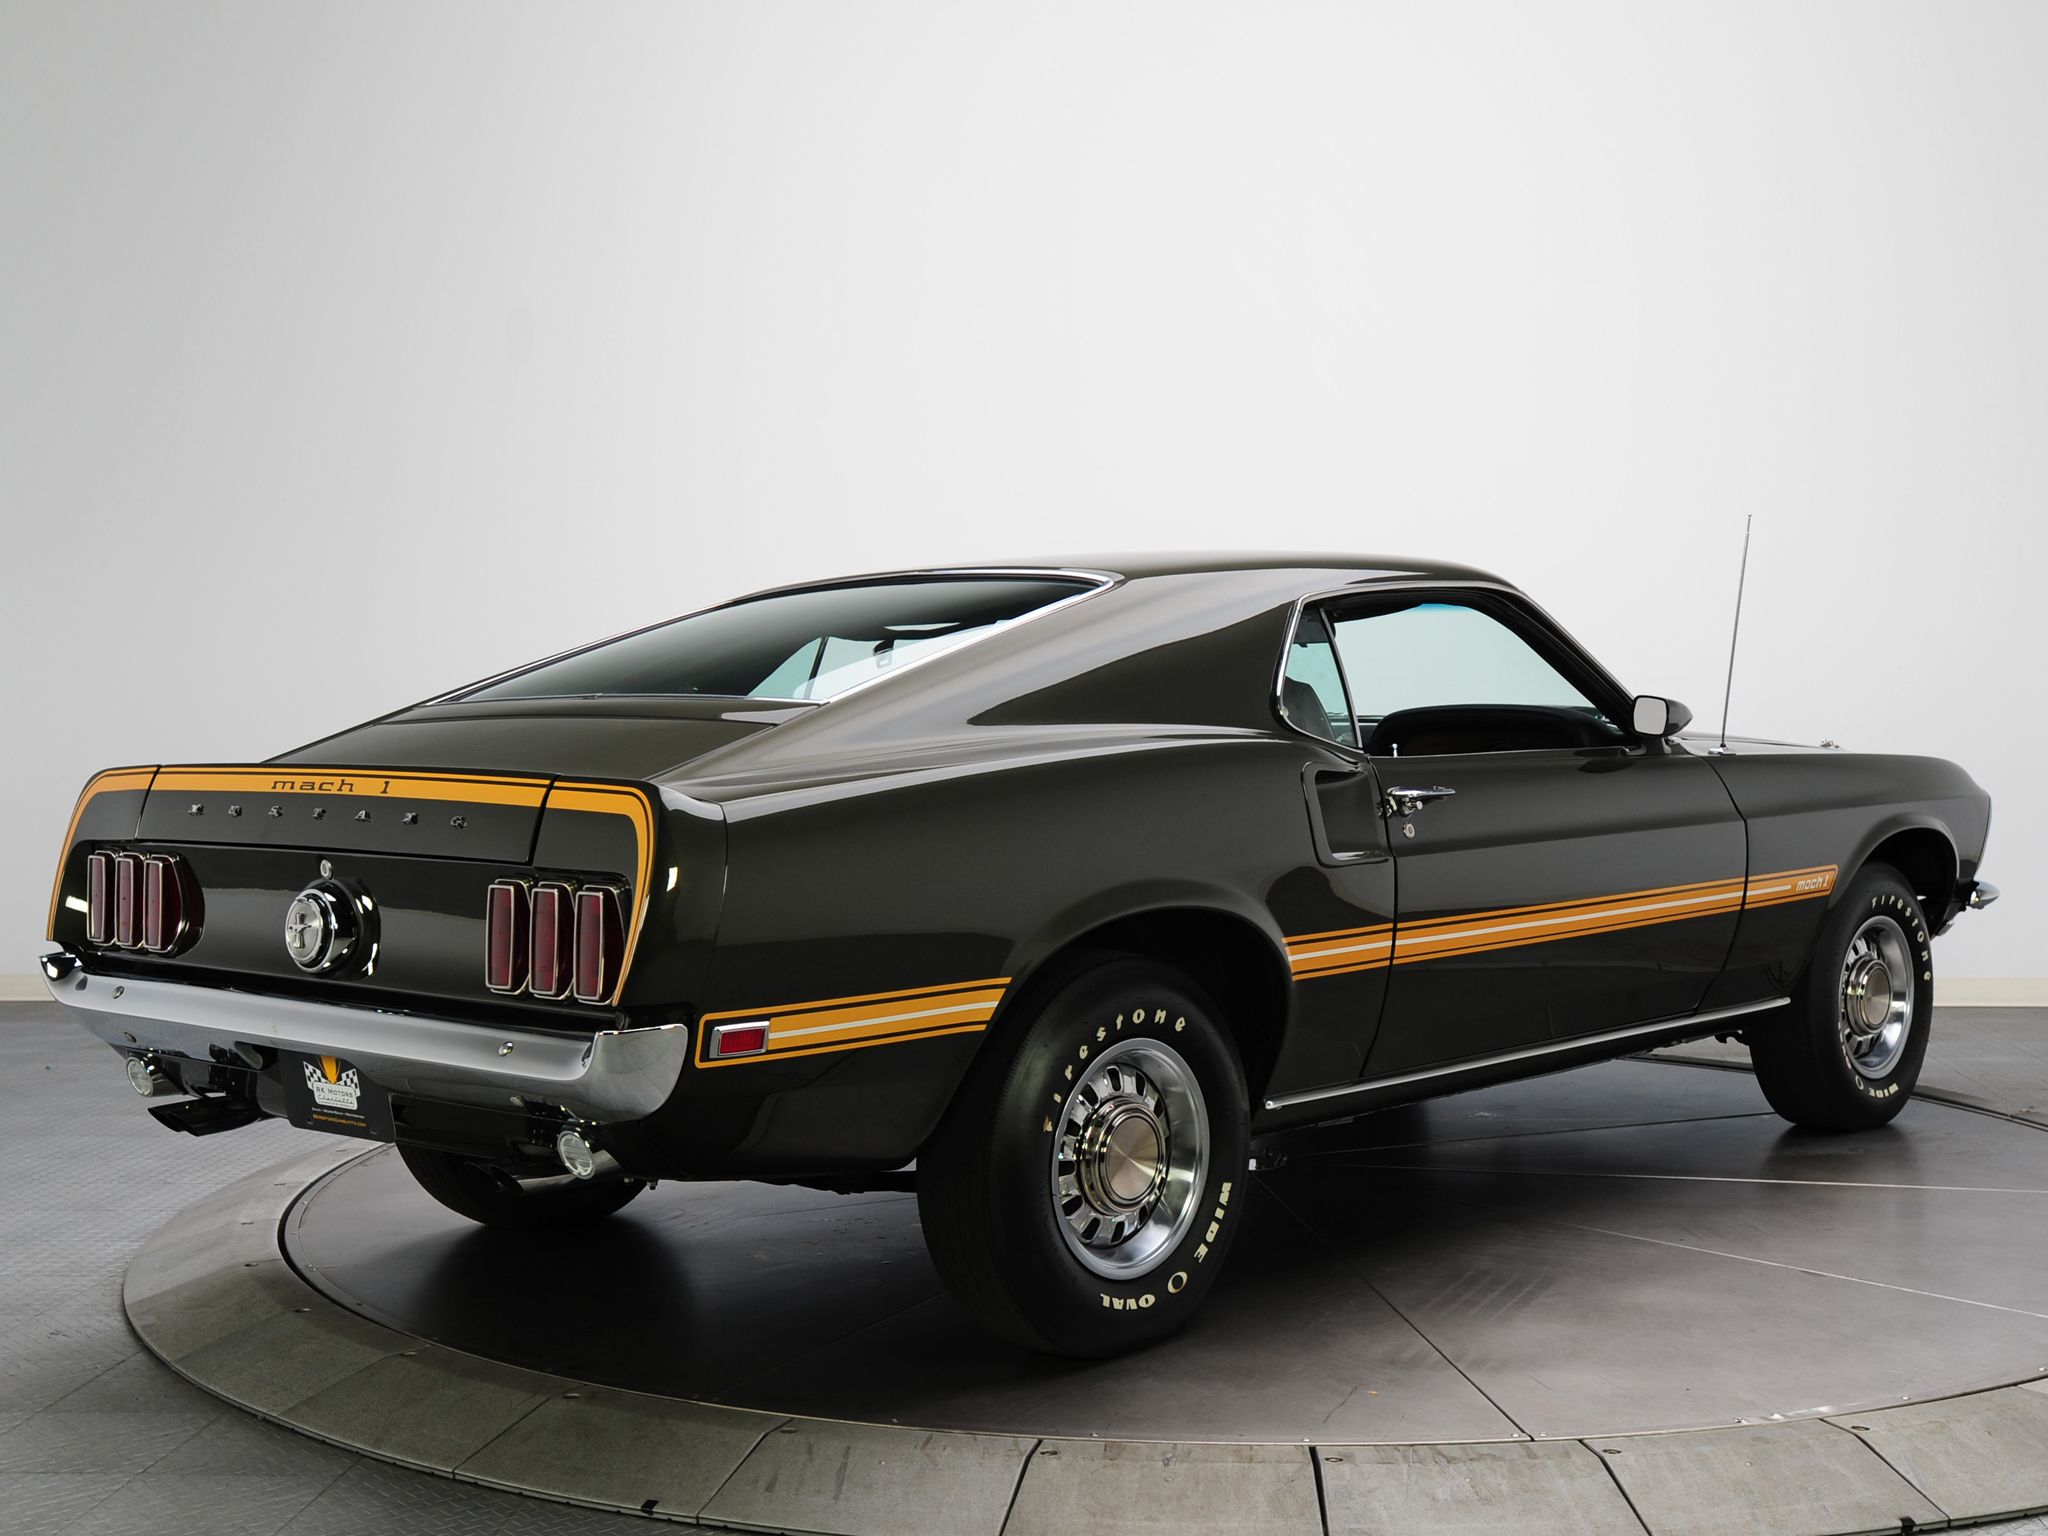 1000 images about ford mustang on pinterest ford mustang convertible shelby gt500 and convertible 1969 ford mustang mach 1